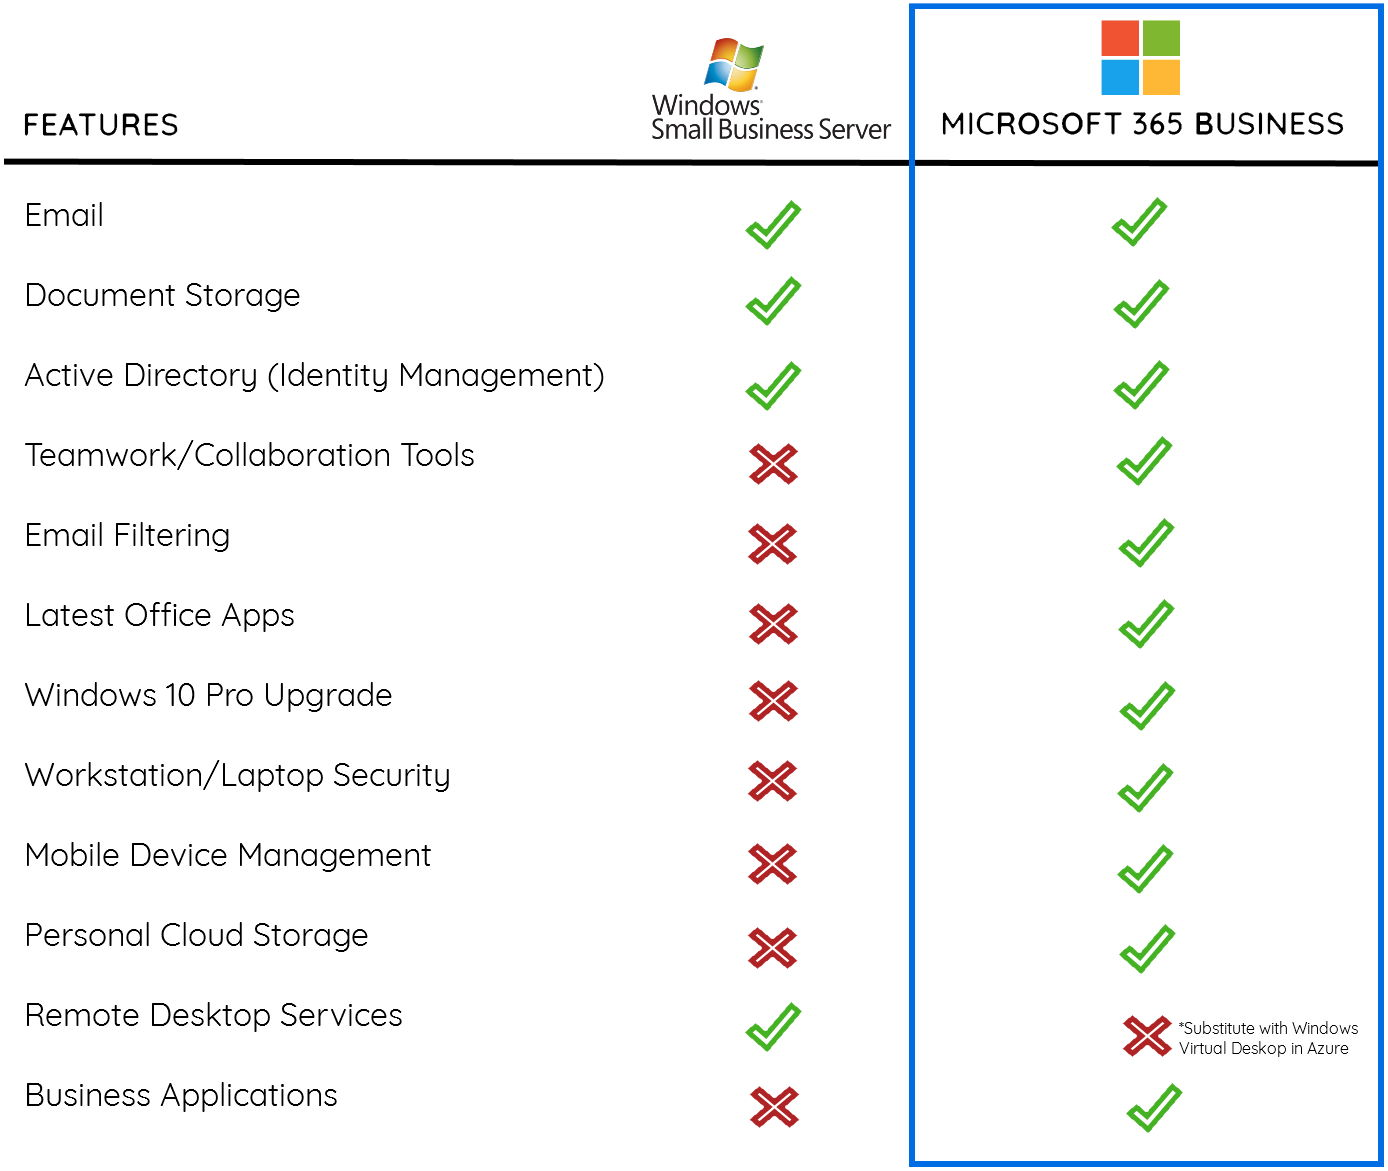 SBS vs Microsoft 365 Comparison Infographic